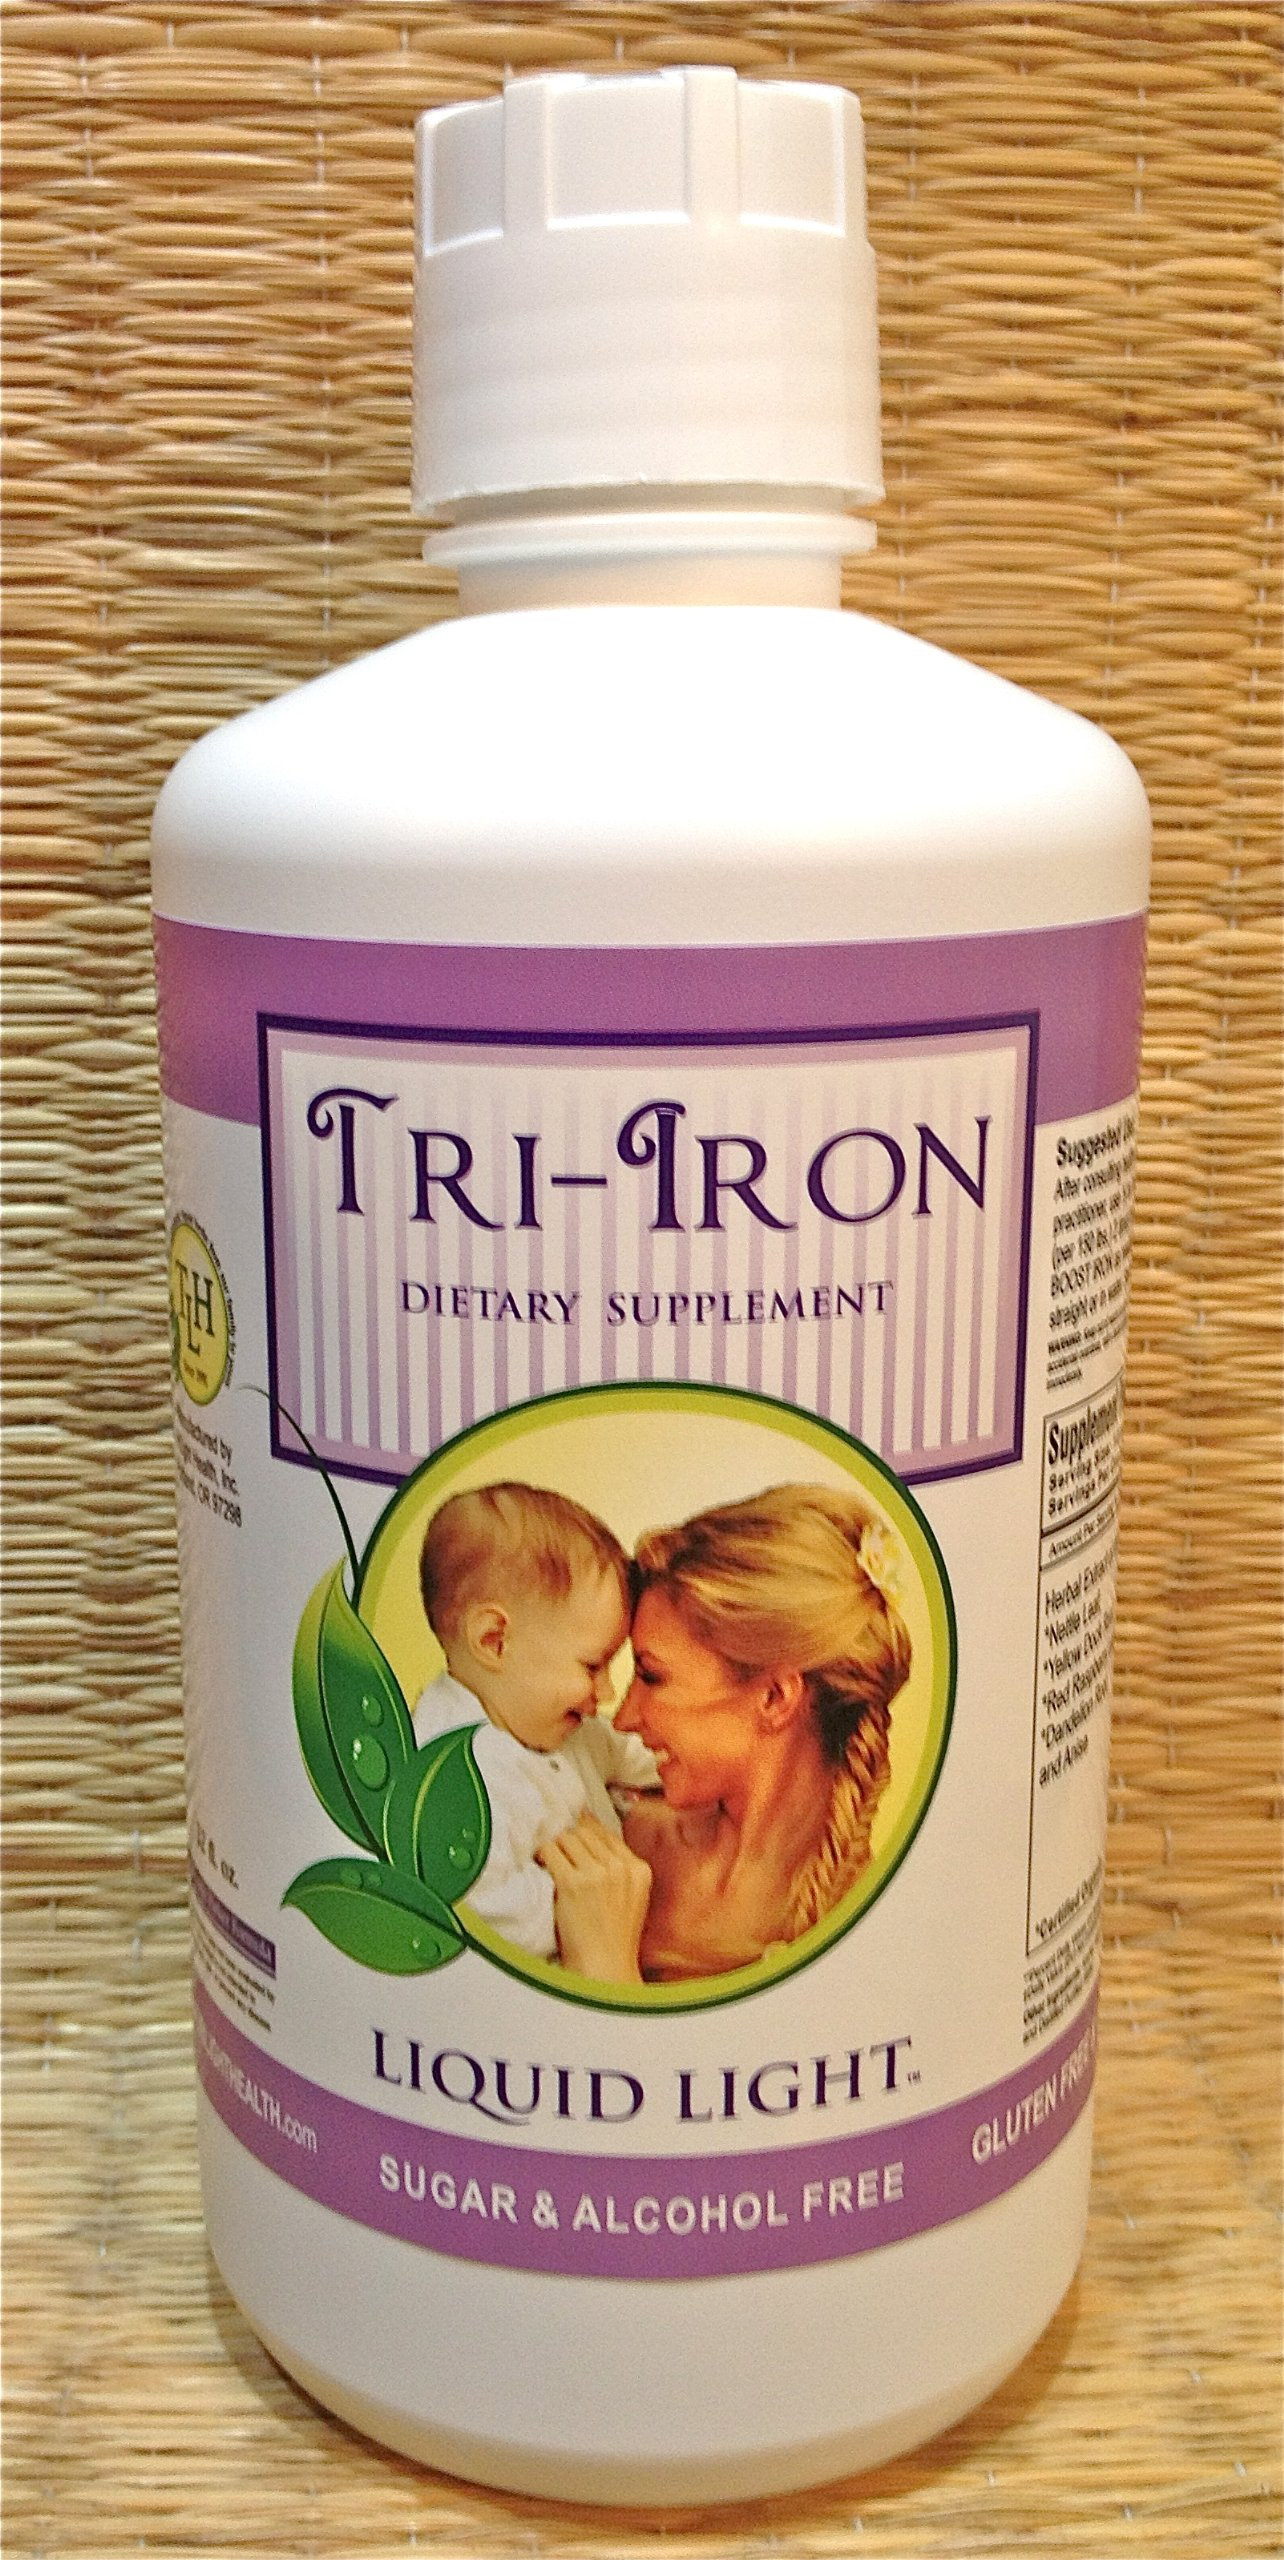 Tri Iron (32 oz Bottle) - High in Iron Herbs. Iron Safe Supplement for Pregnancy and Children.